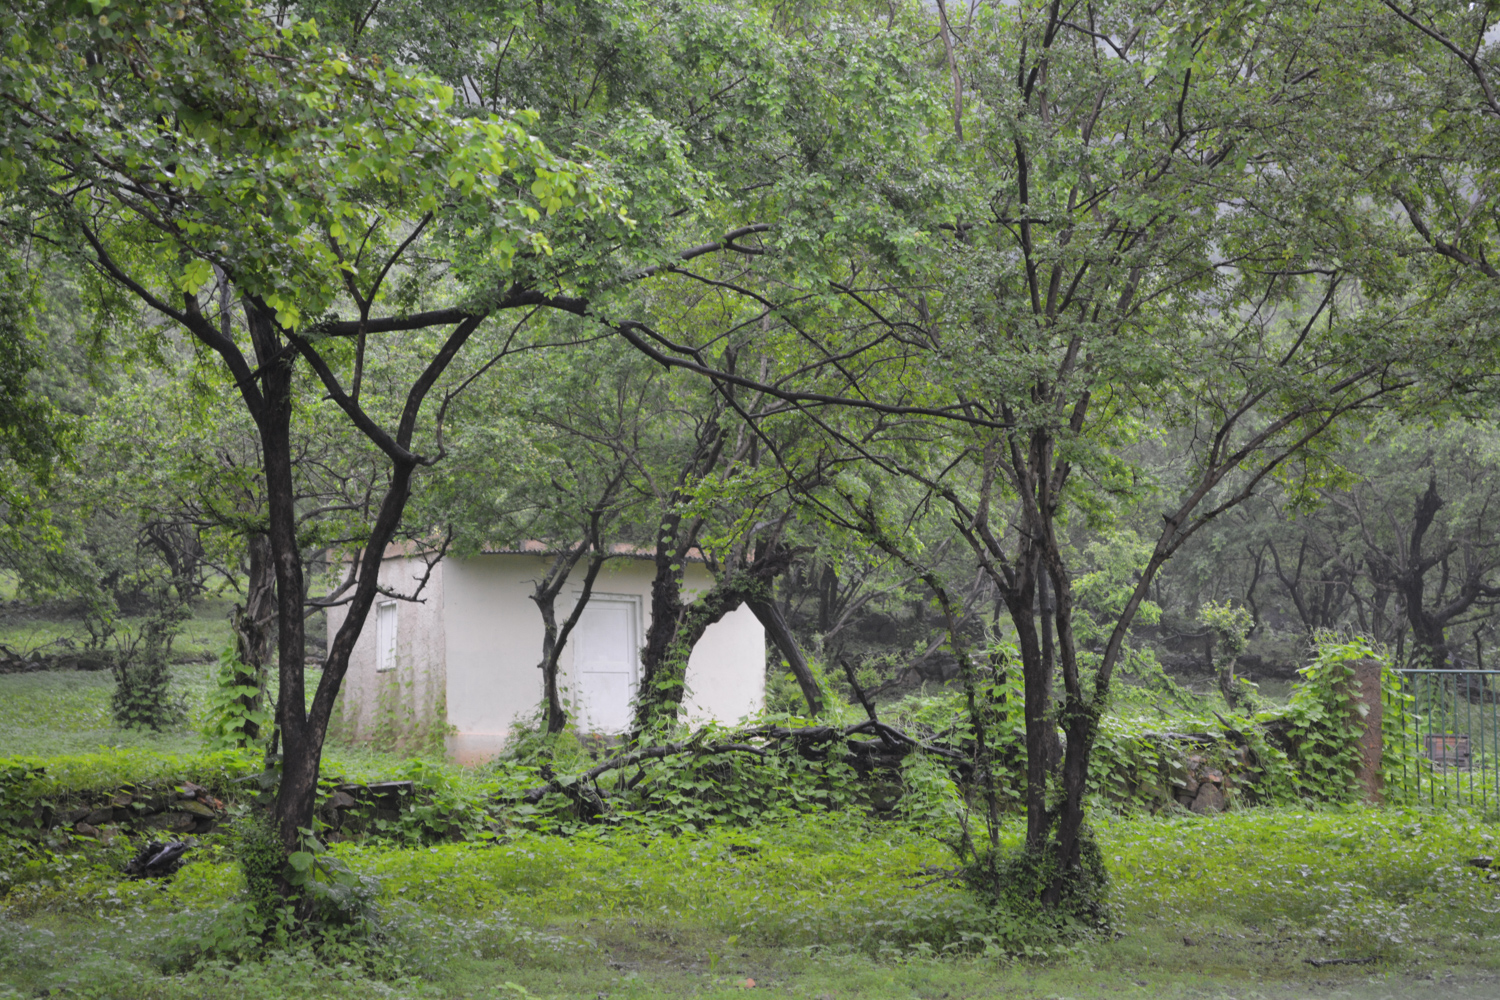 A property nestled in the trees.